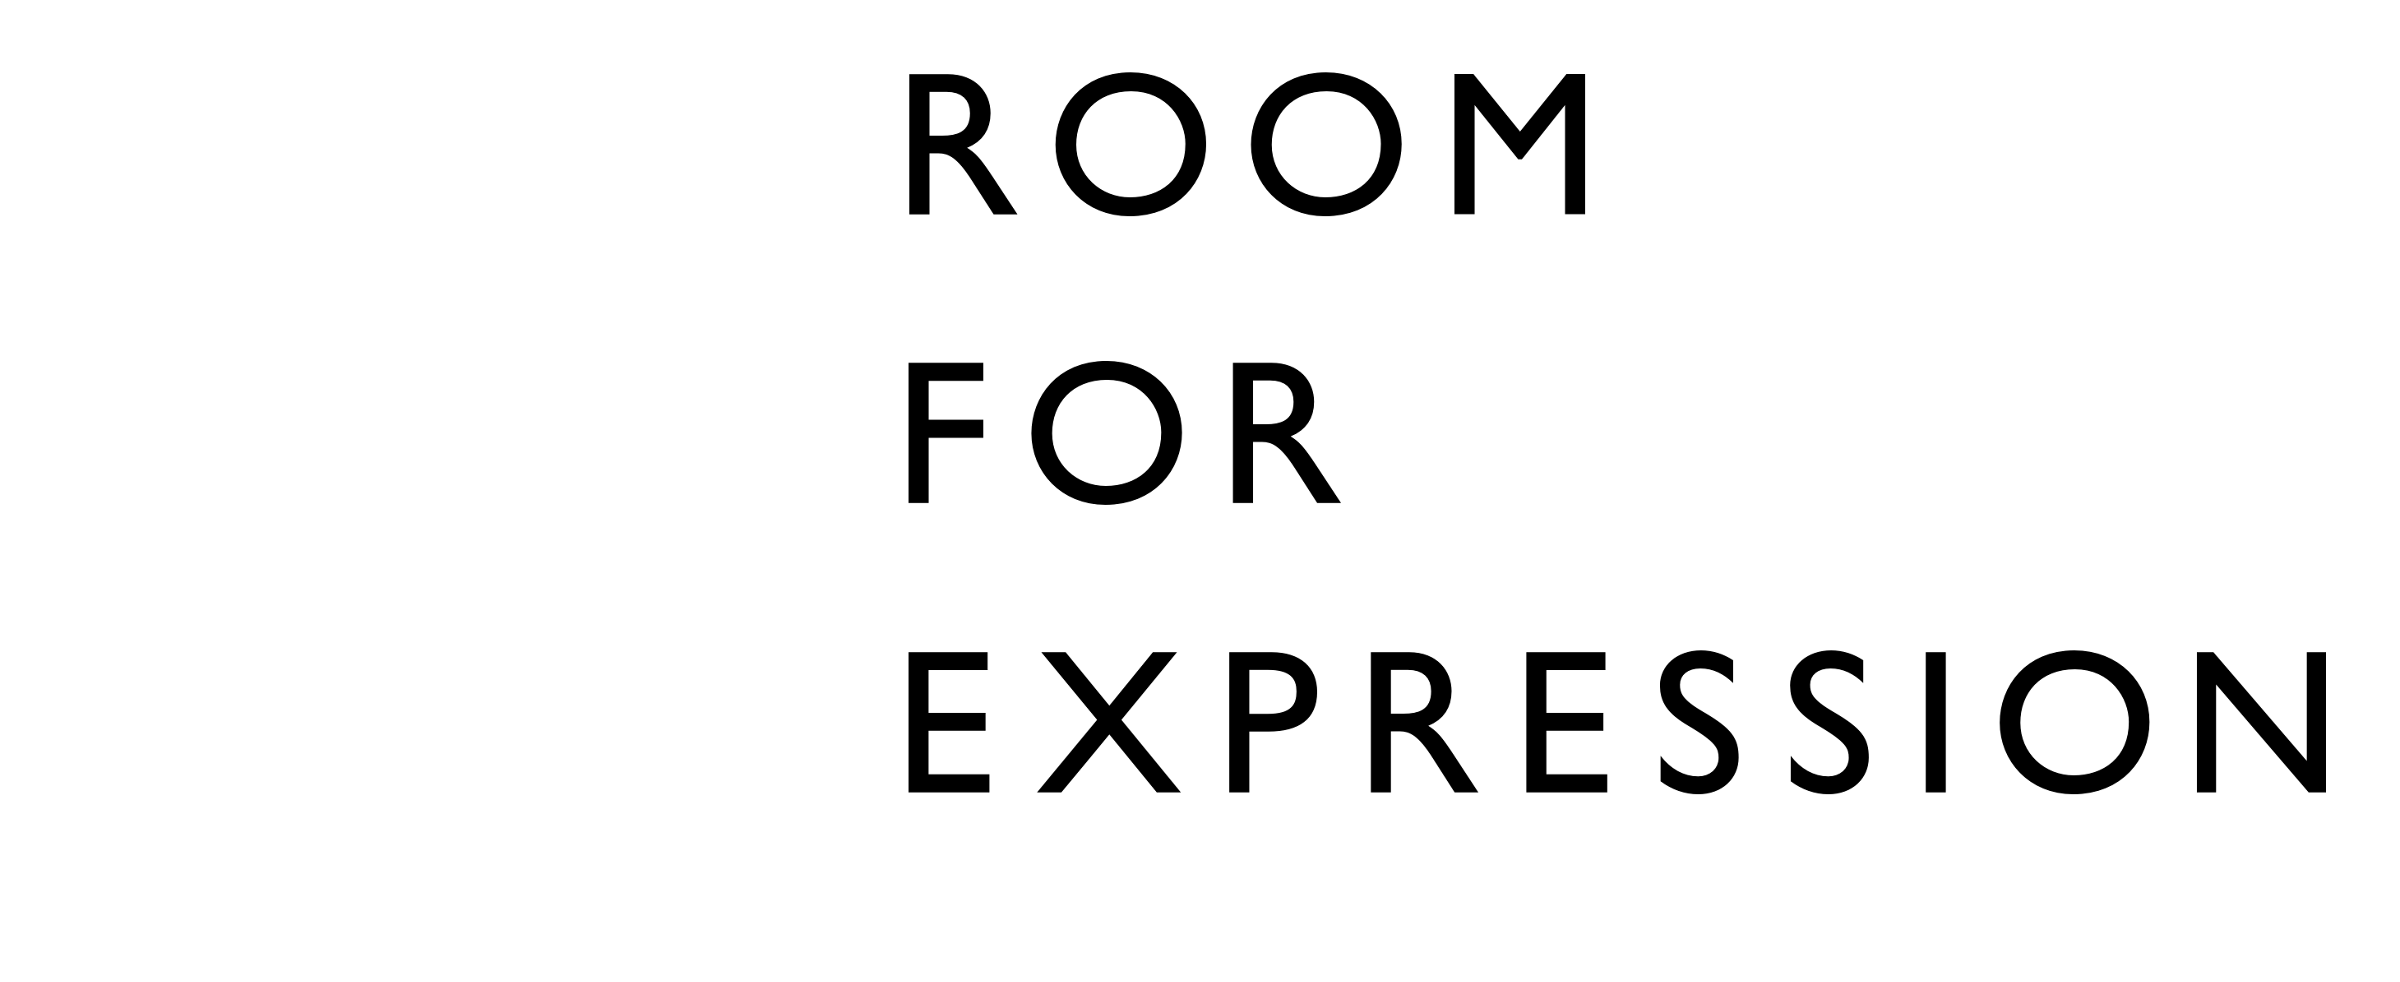 Room for Living - Room for Expression